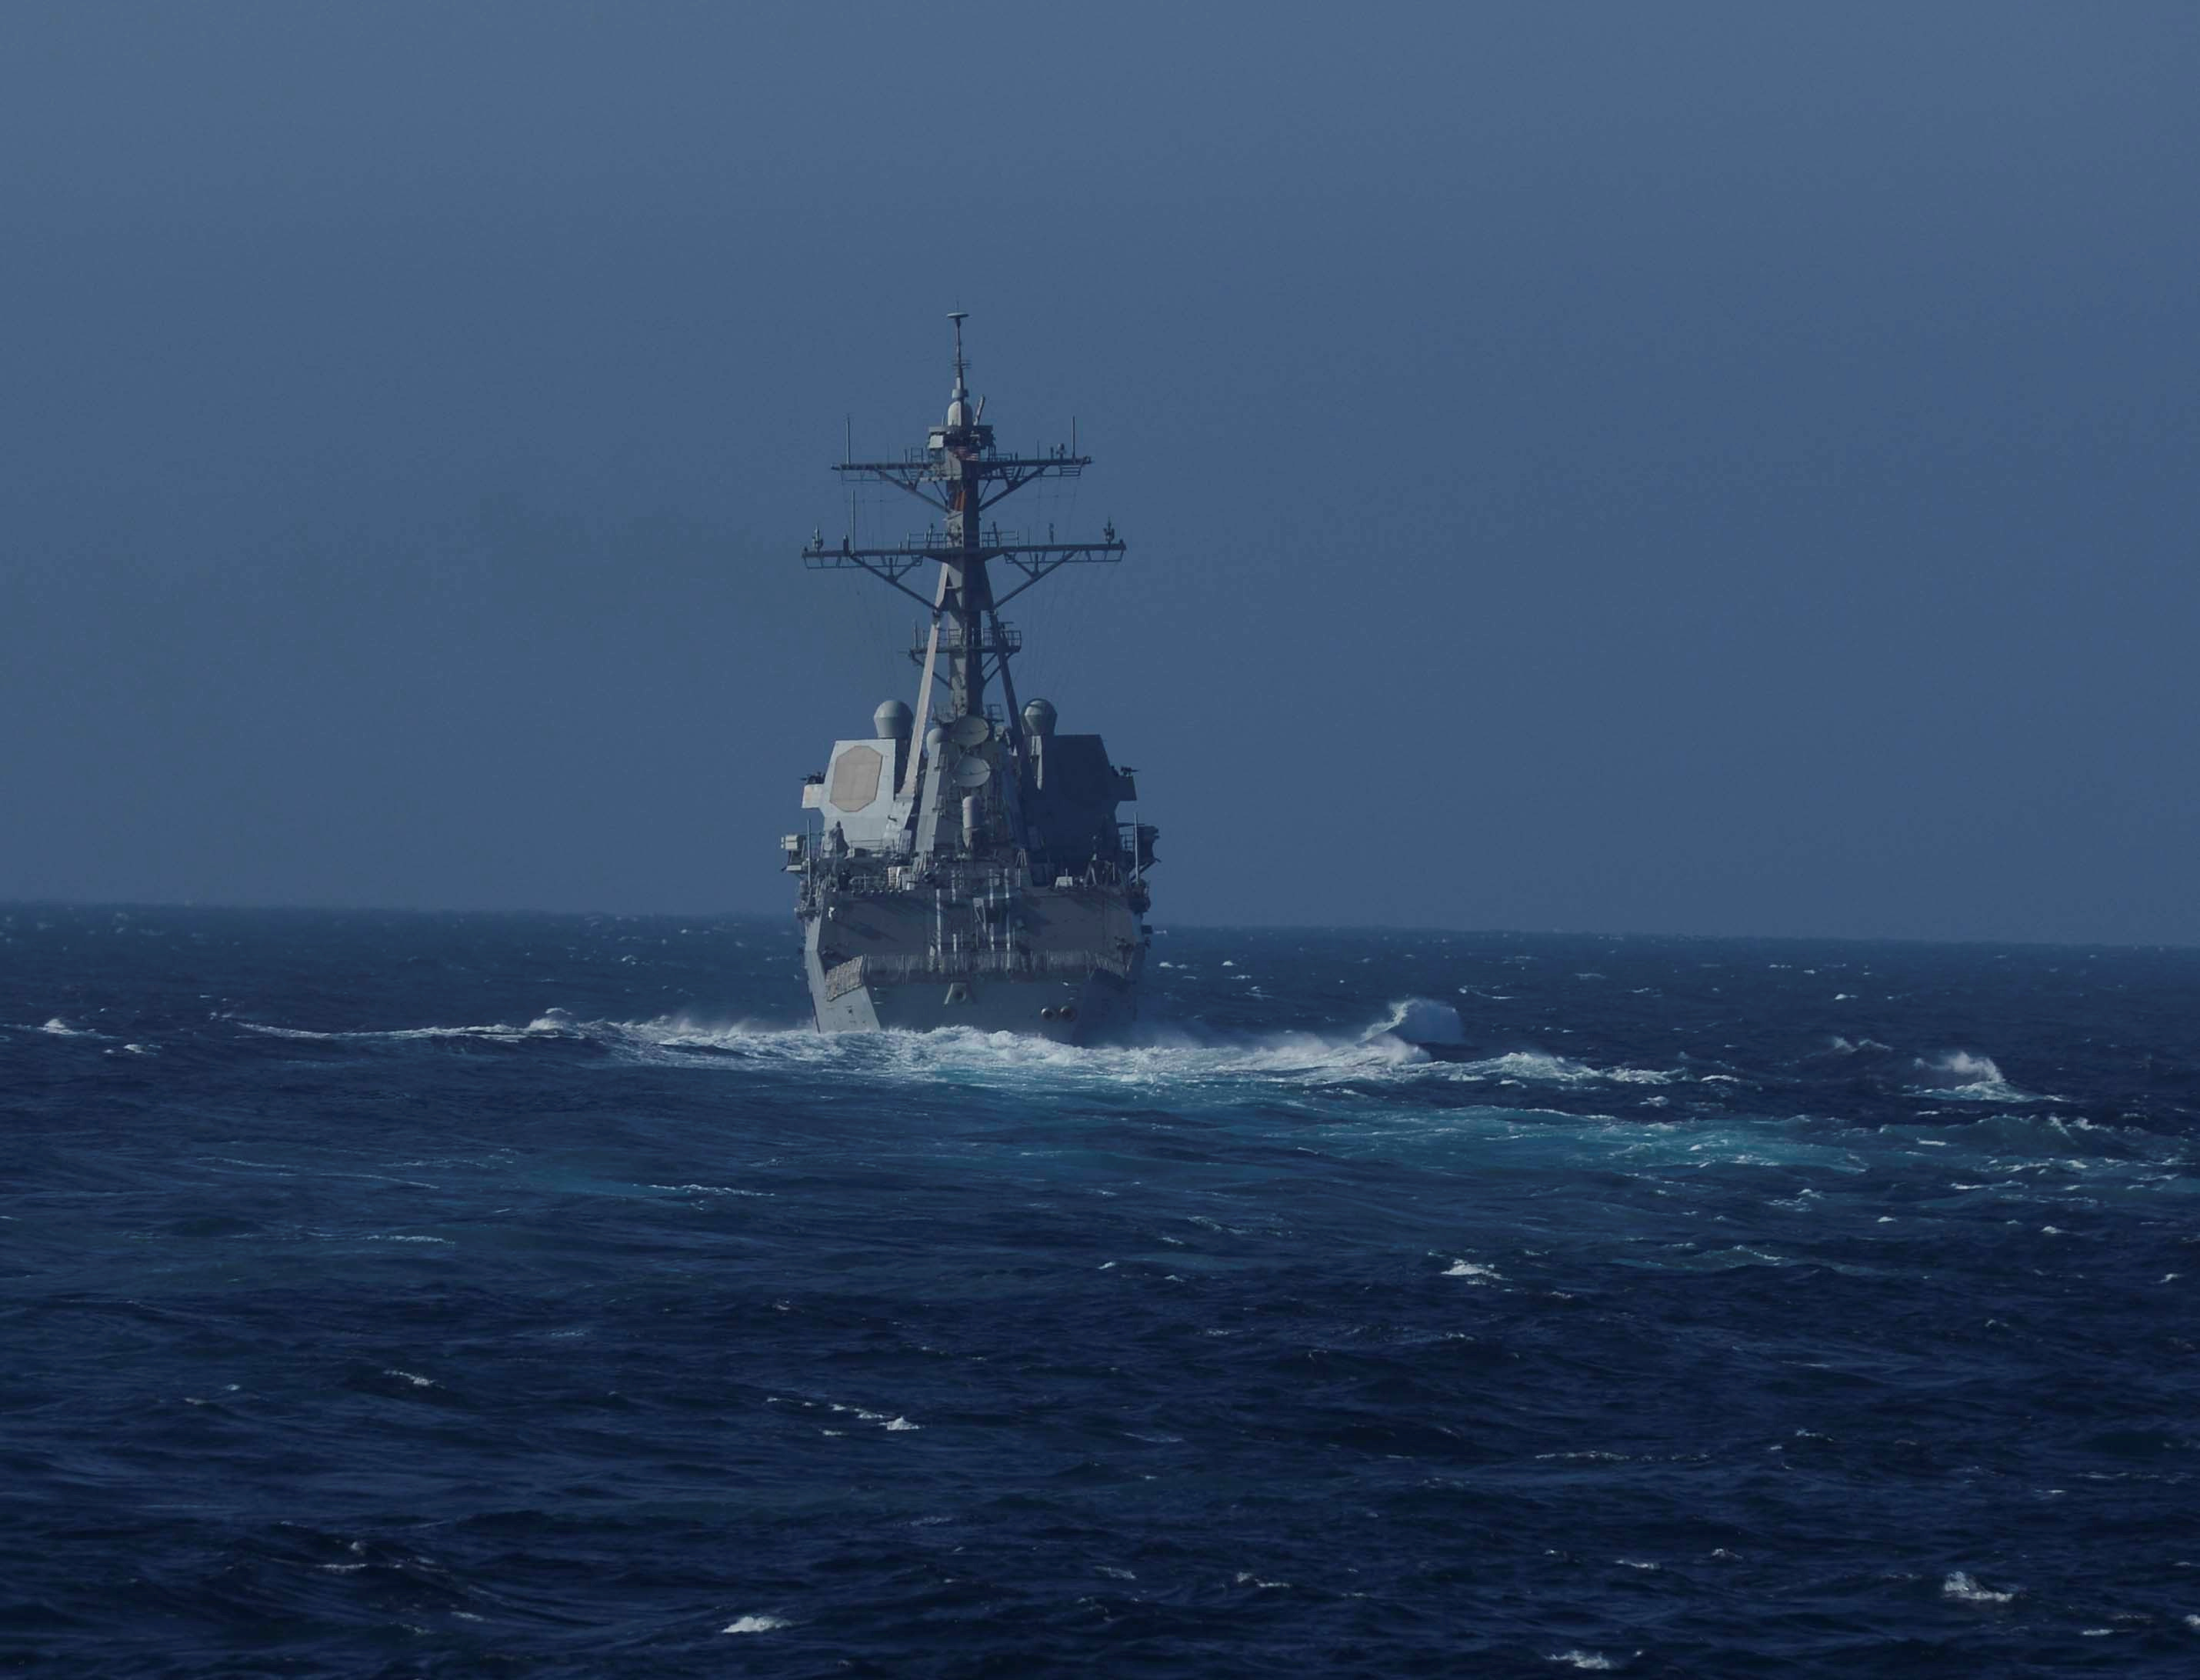 Russia says it chased U.S. naval destroyer away from its waters